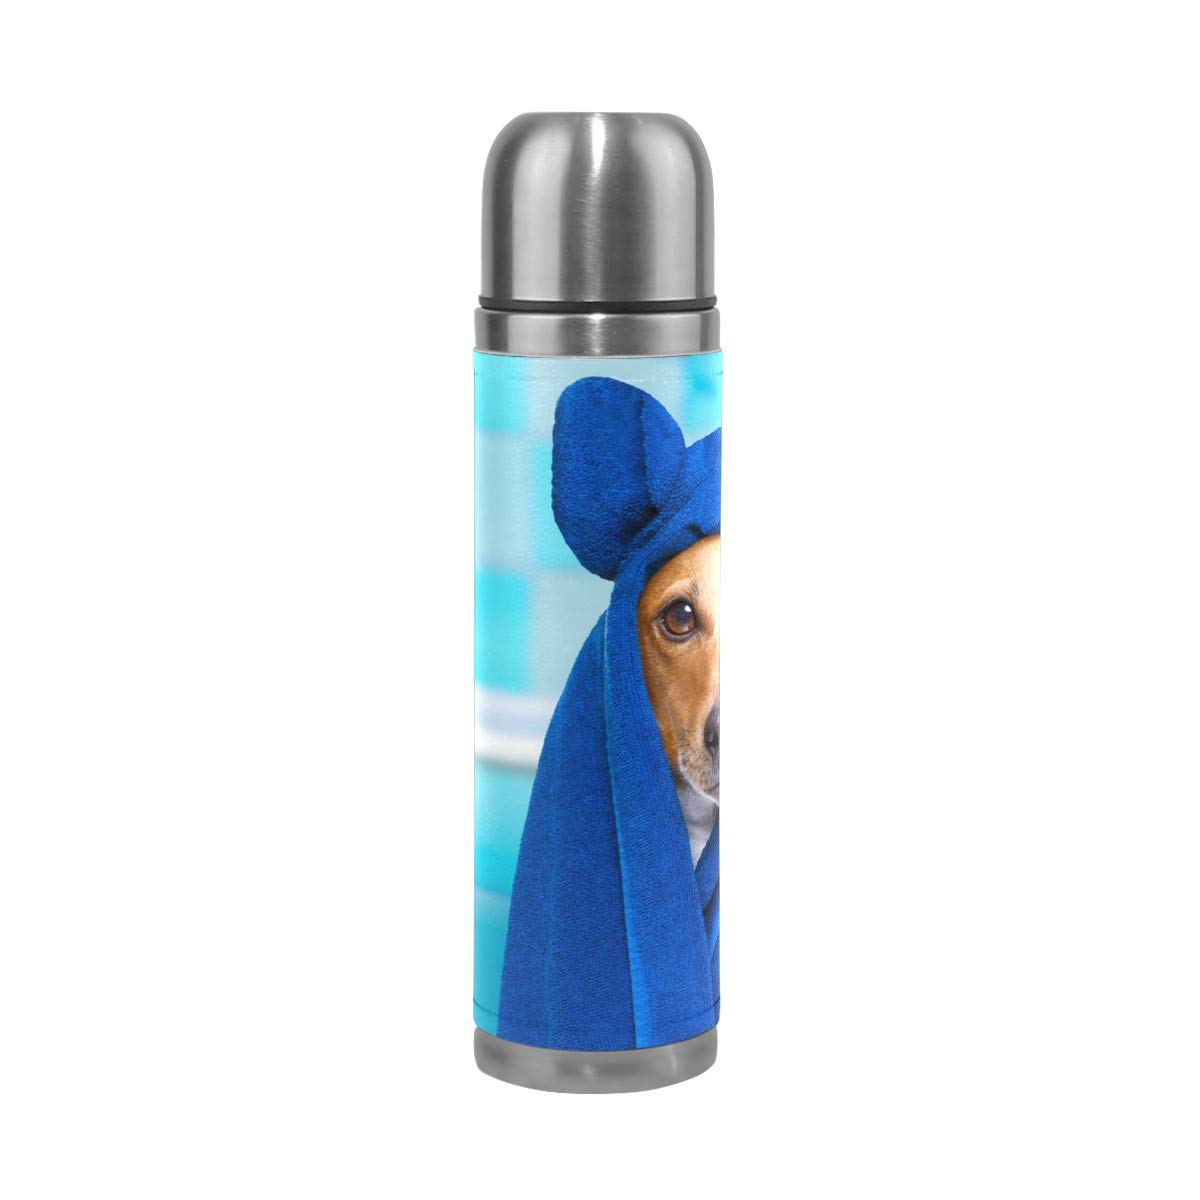 Dog in Wellness Spa Water Bottle Stainless Steel Leak Proof Double Walled Vacuum Insulated Travel Coffee Mug Genuine Leather Cover Drink Cup 17 OZ